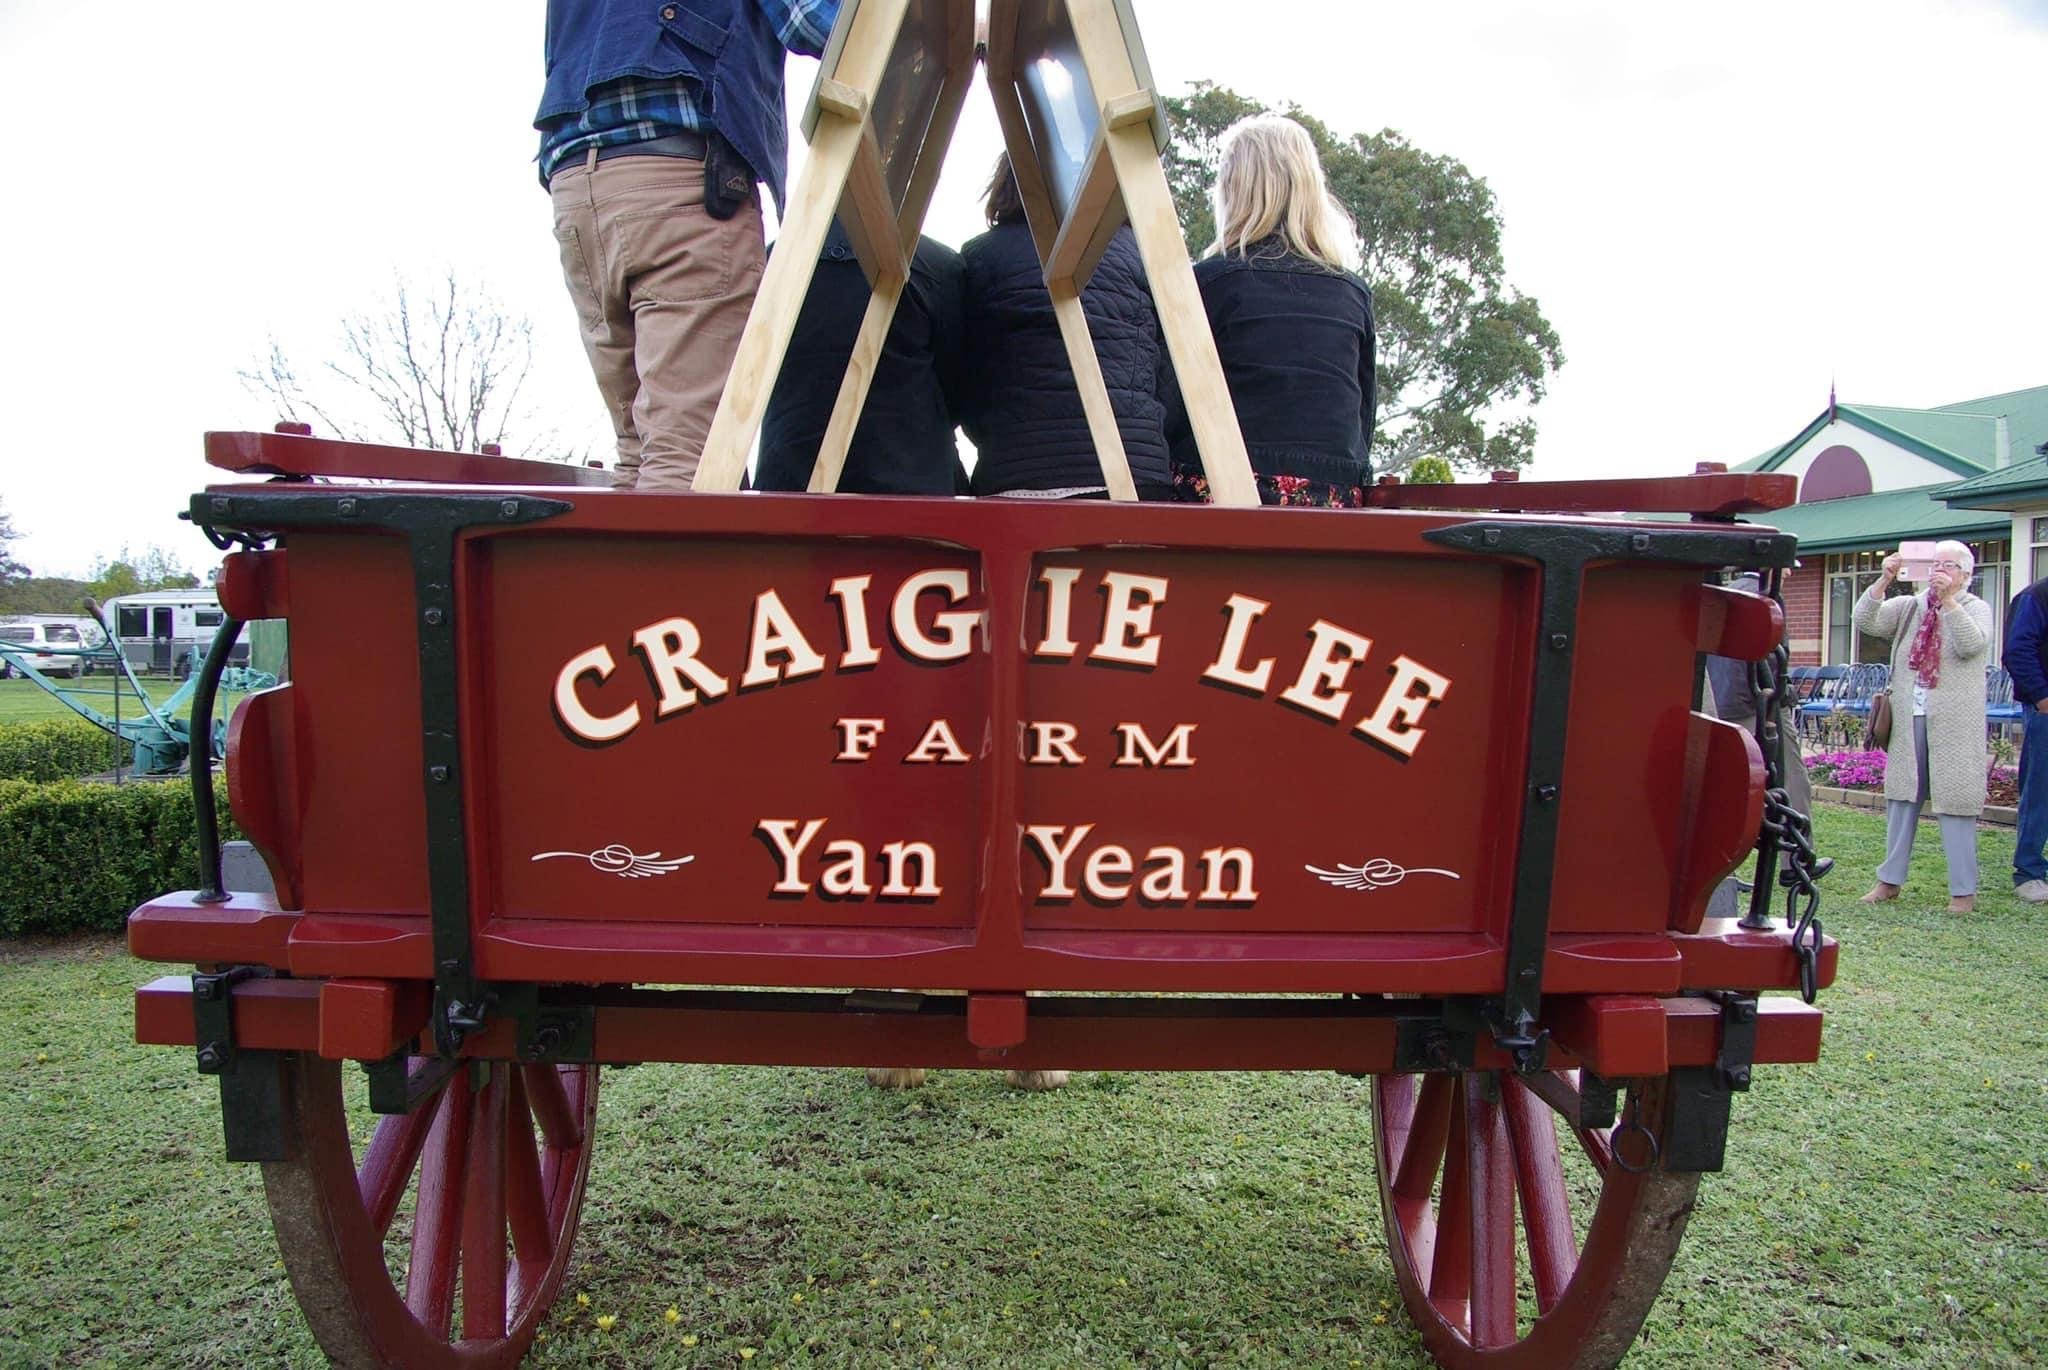 This 1880s cart spent its working life with the Hurrey family at 'Craigie Lee', and was used to carry sheaves of oaten hay and cans of milk from the dairy farm to the Yan Yean rail platform for transport to the Hurrey Brothers Dairy in North Fitzroy. Credit wikinorthia.net.au